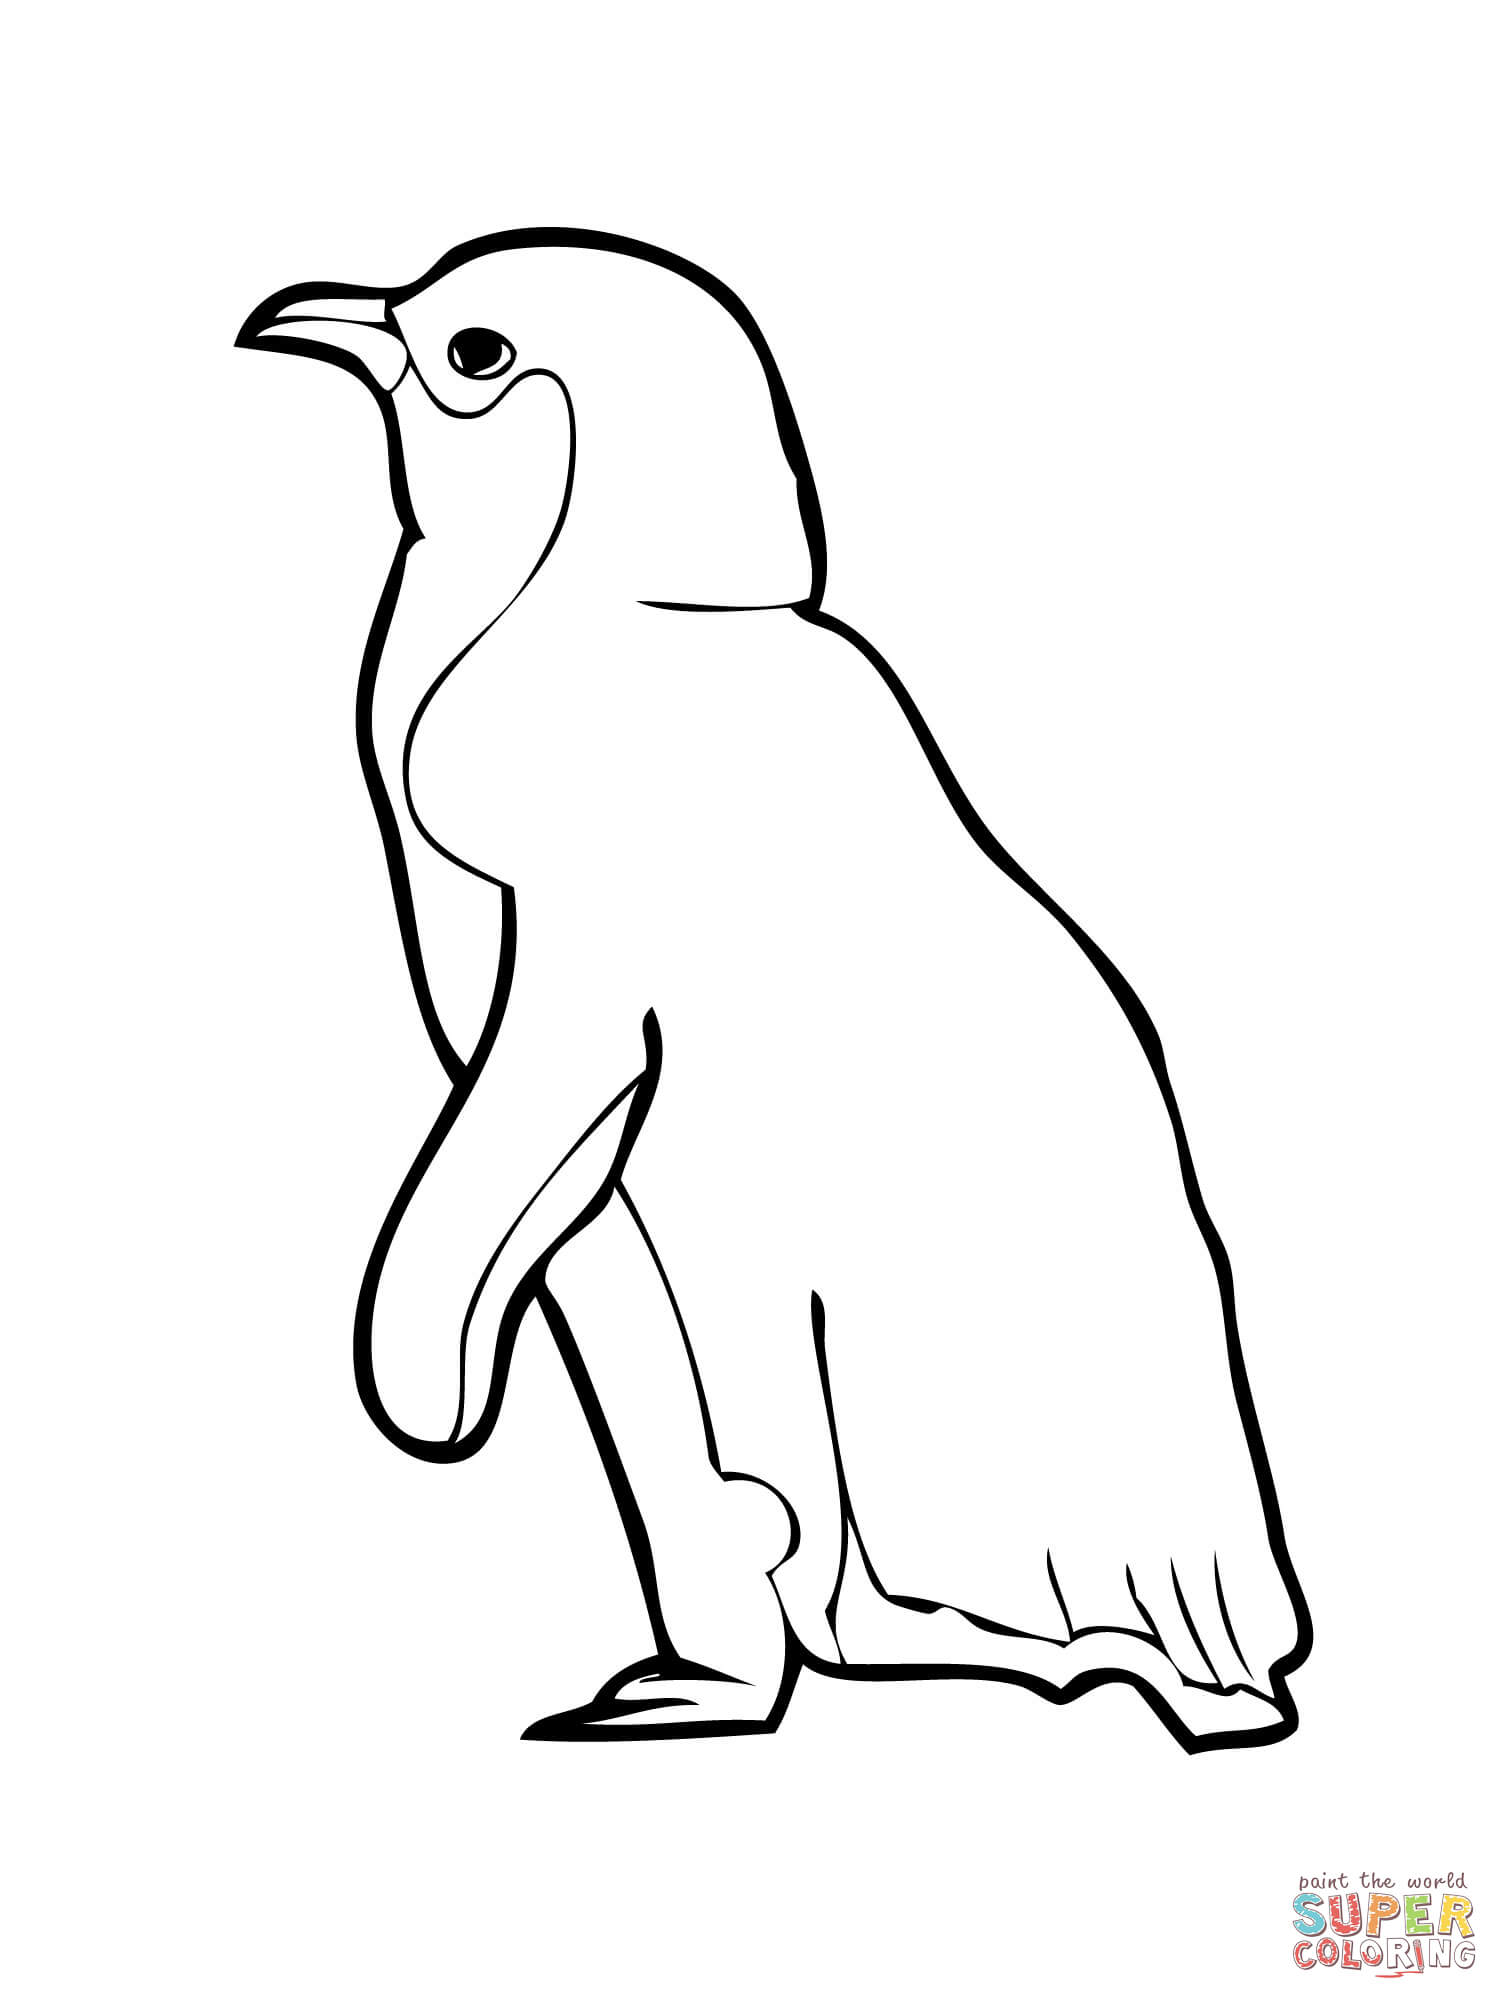 Penguin Outline Drawing At Getdrawings